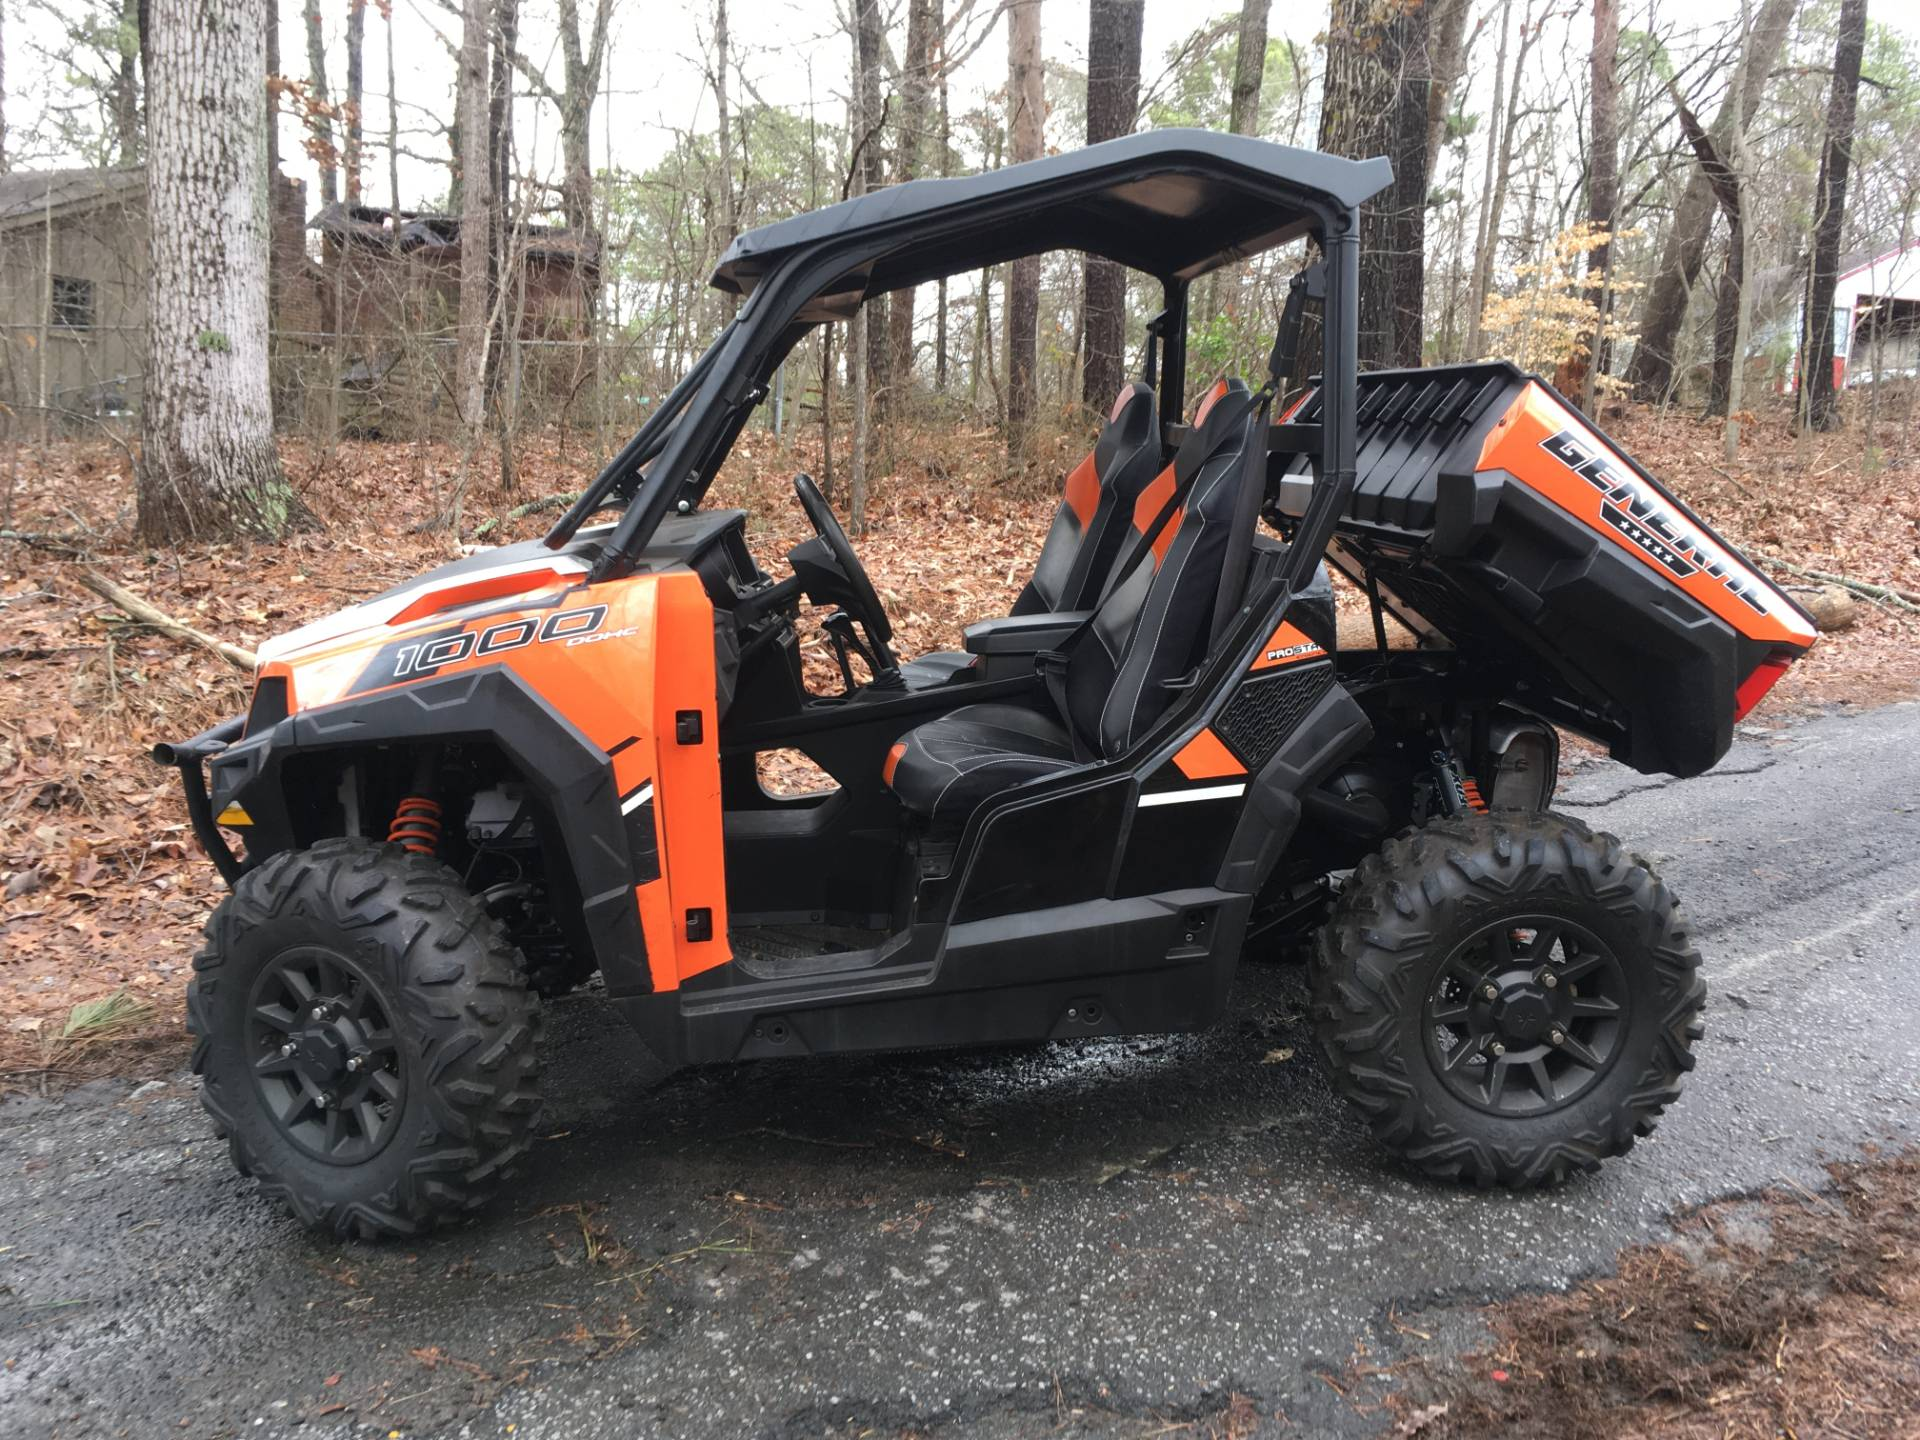 2016 POLARIS GENERAL 1000 EPS in Woodstock, Georgia - Photo 3